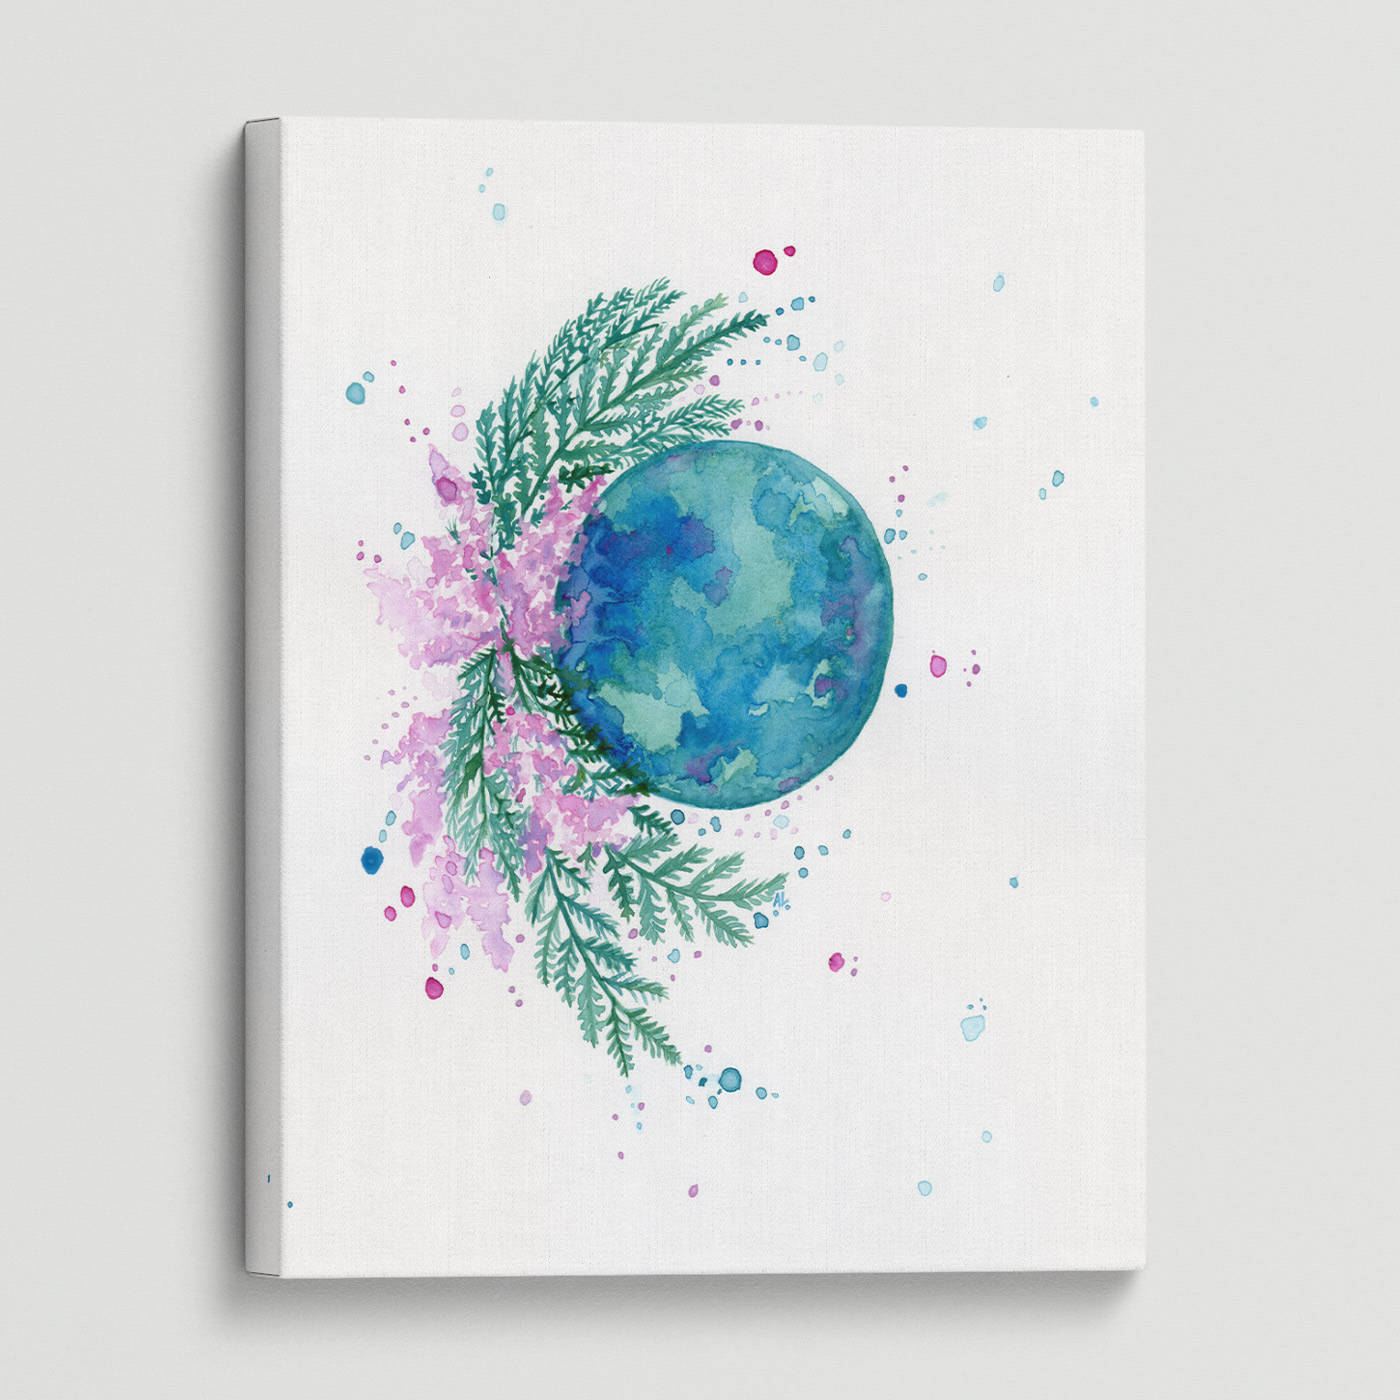 Water-colour print of delicate flowers encircles a vibrant teal moon.